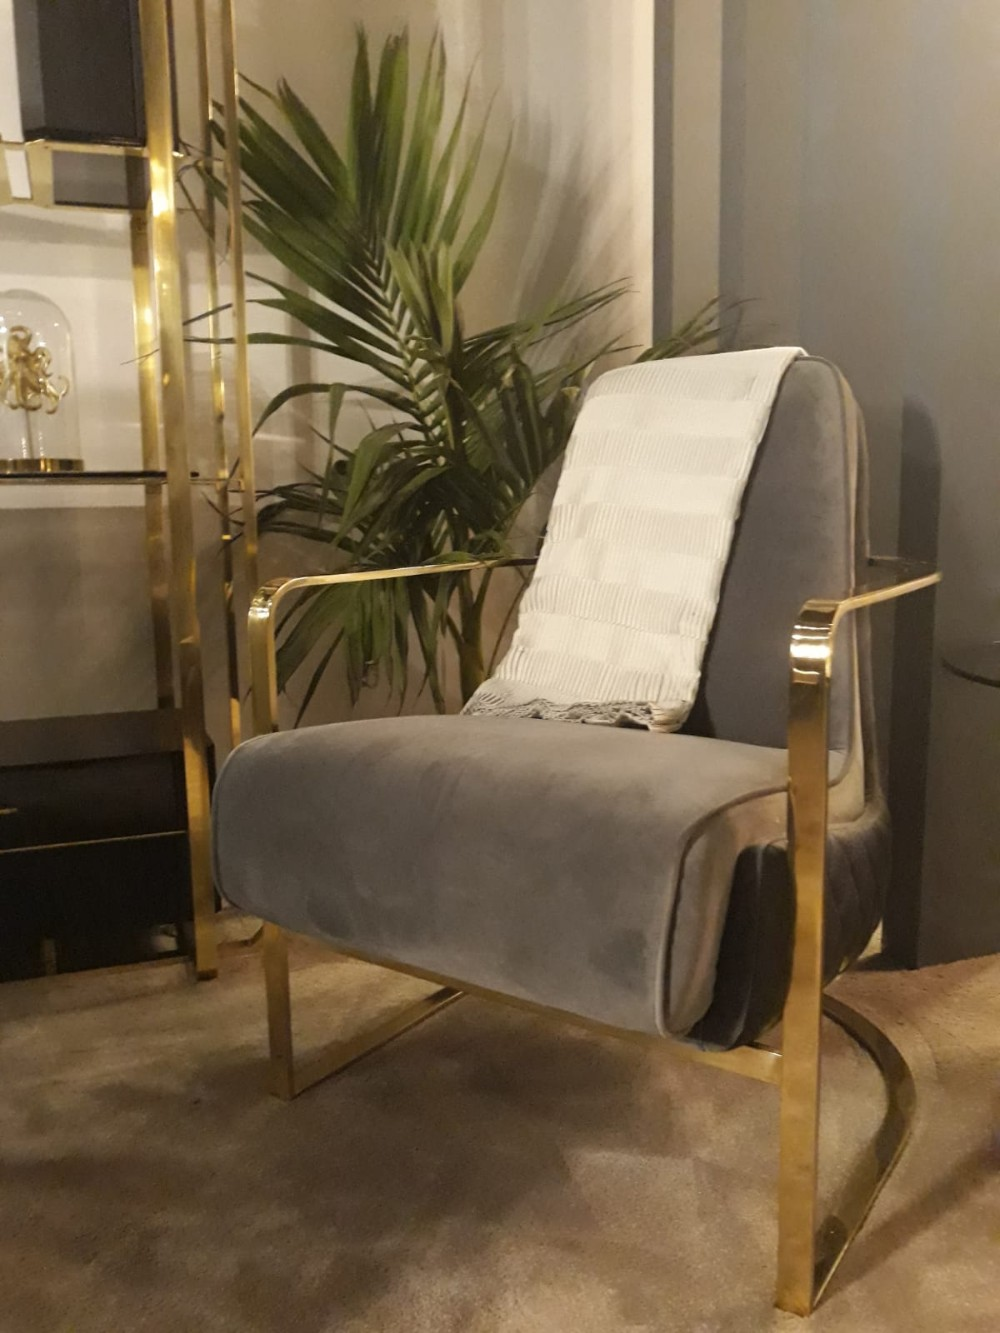 Meet LUXXU's New Furniture Designs At iSaloni 2019 02 new furniture designs Meet LUXXU's New Furniture Designs At iSaloni 2019 Meet LUXXU   s New Furniture Designs At iSaloni 2019 02